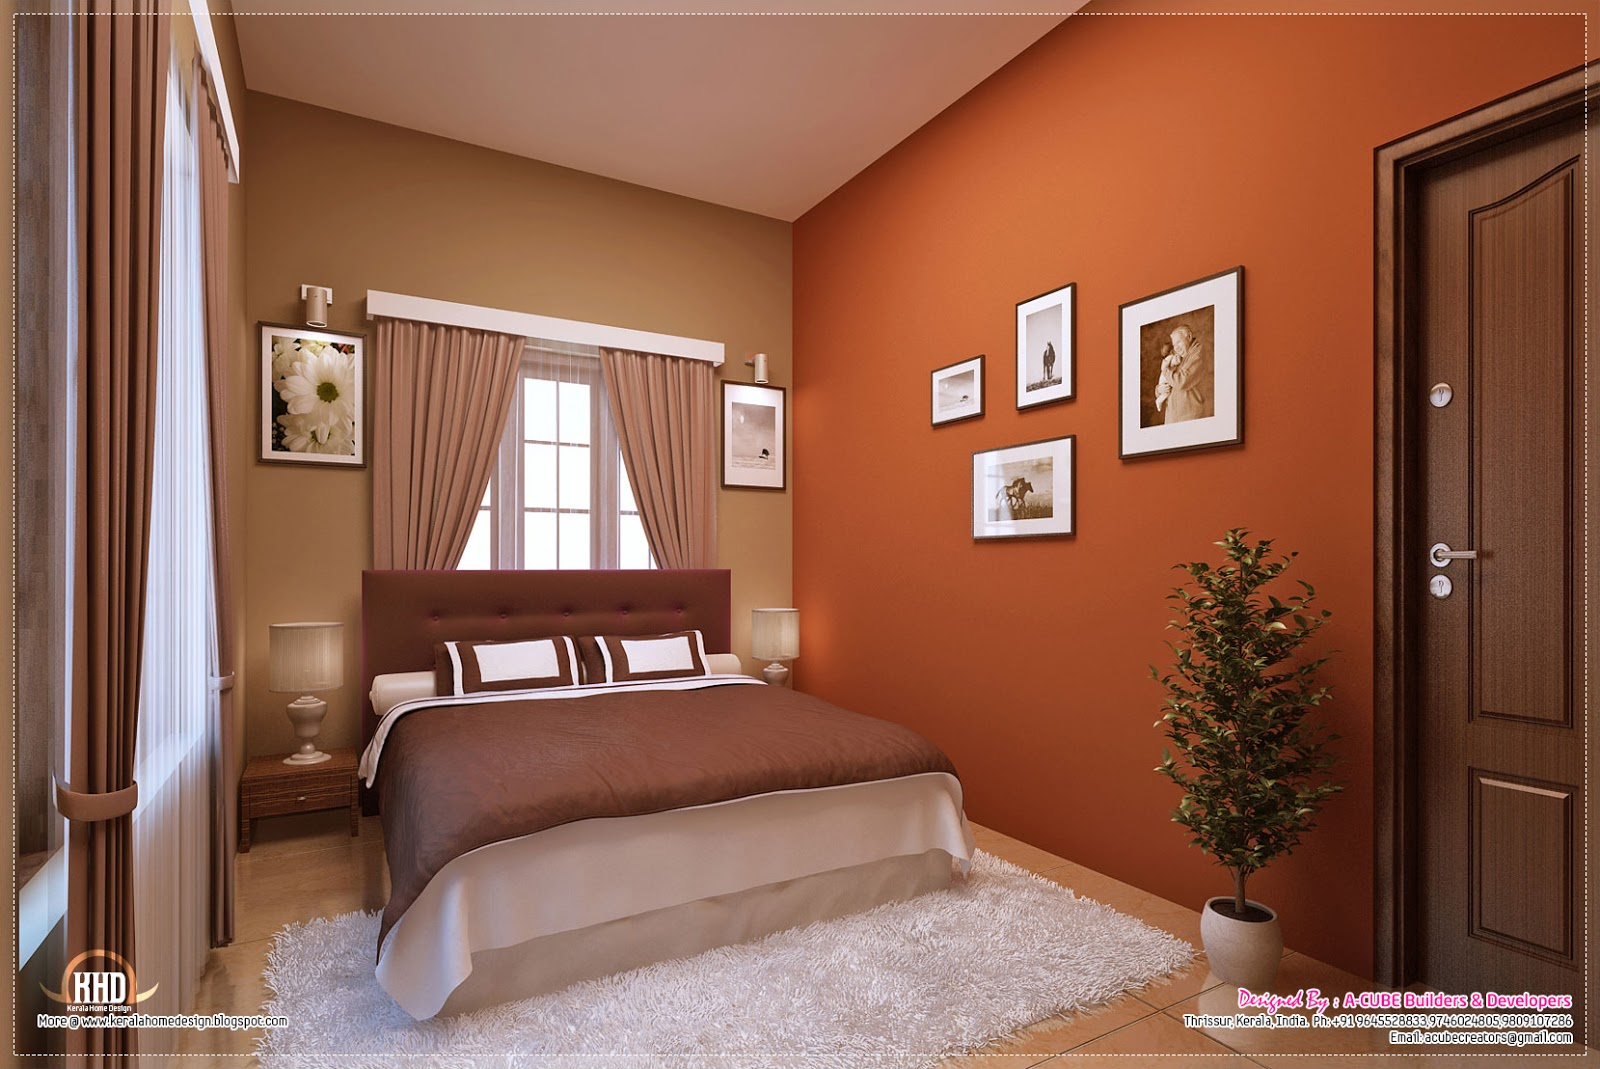 Awesome interior decoration ideas kerala home design and for Interior decoration of house photos